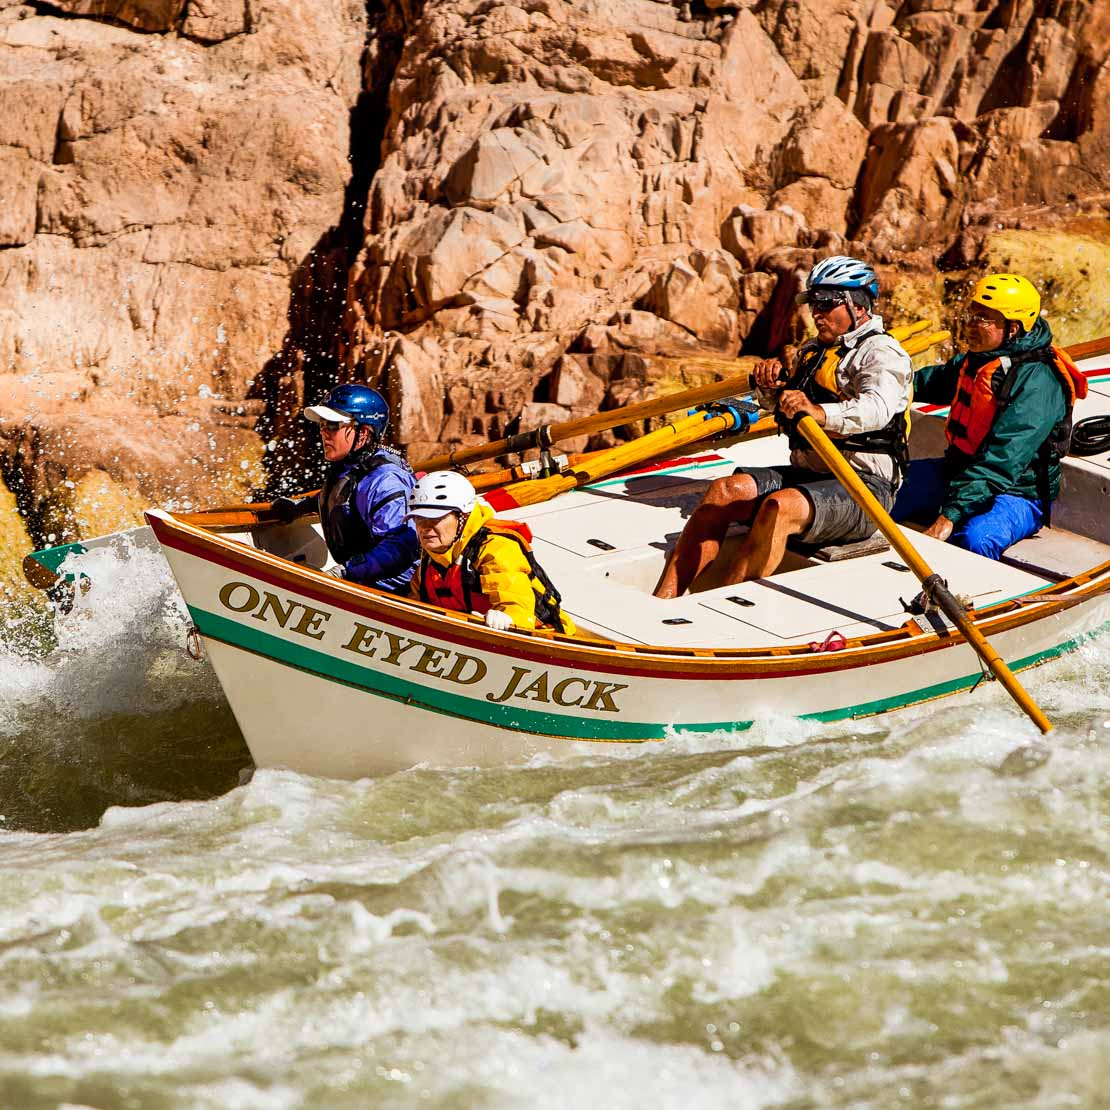 Grand Canyon Dory One Eyed Jack rafting on the Colorado River